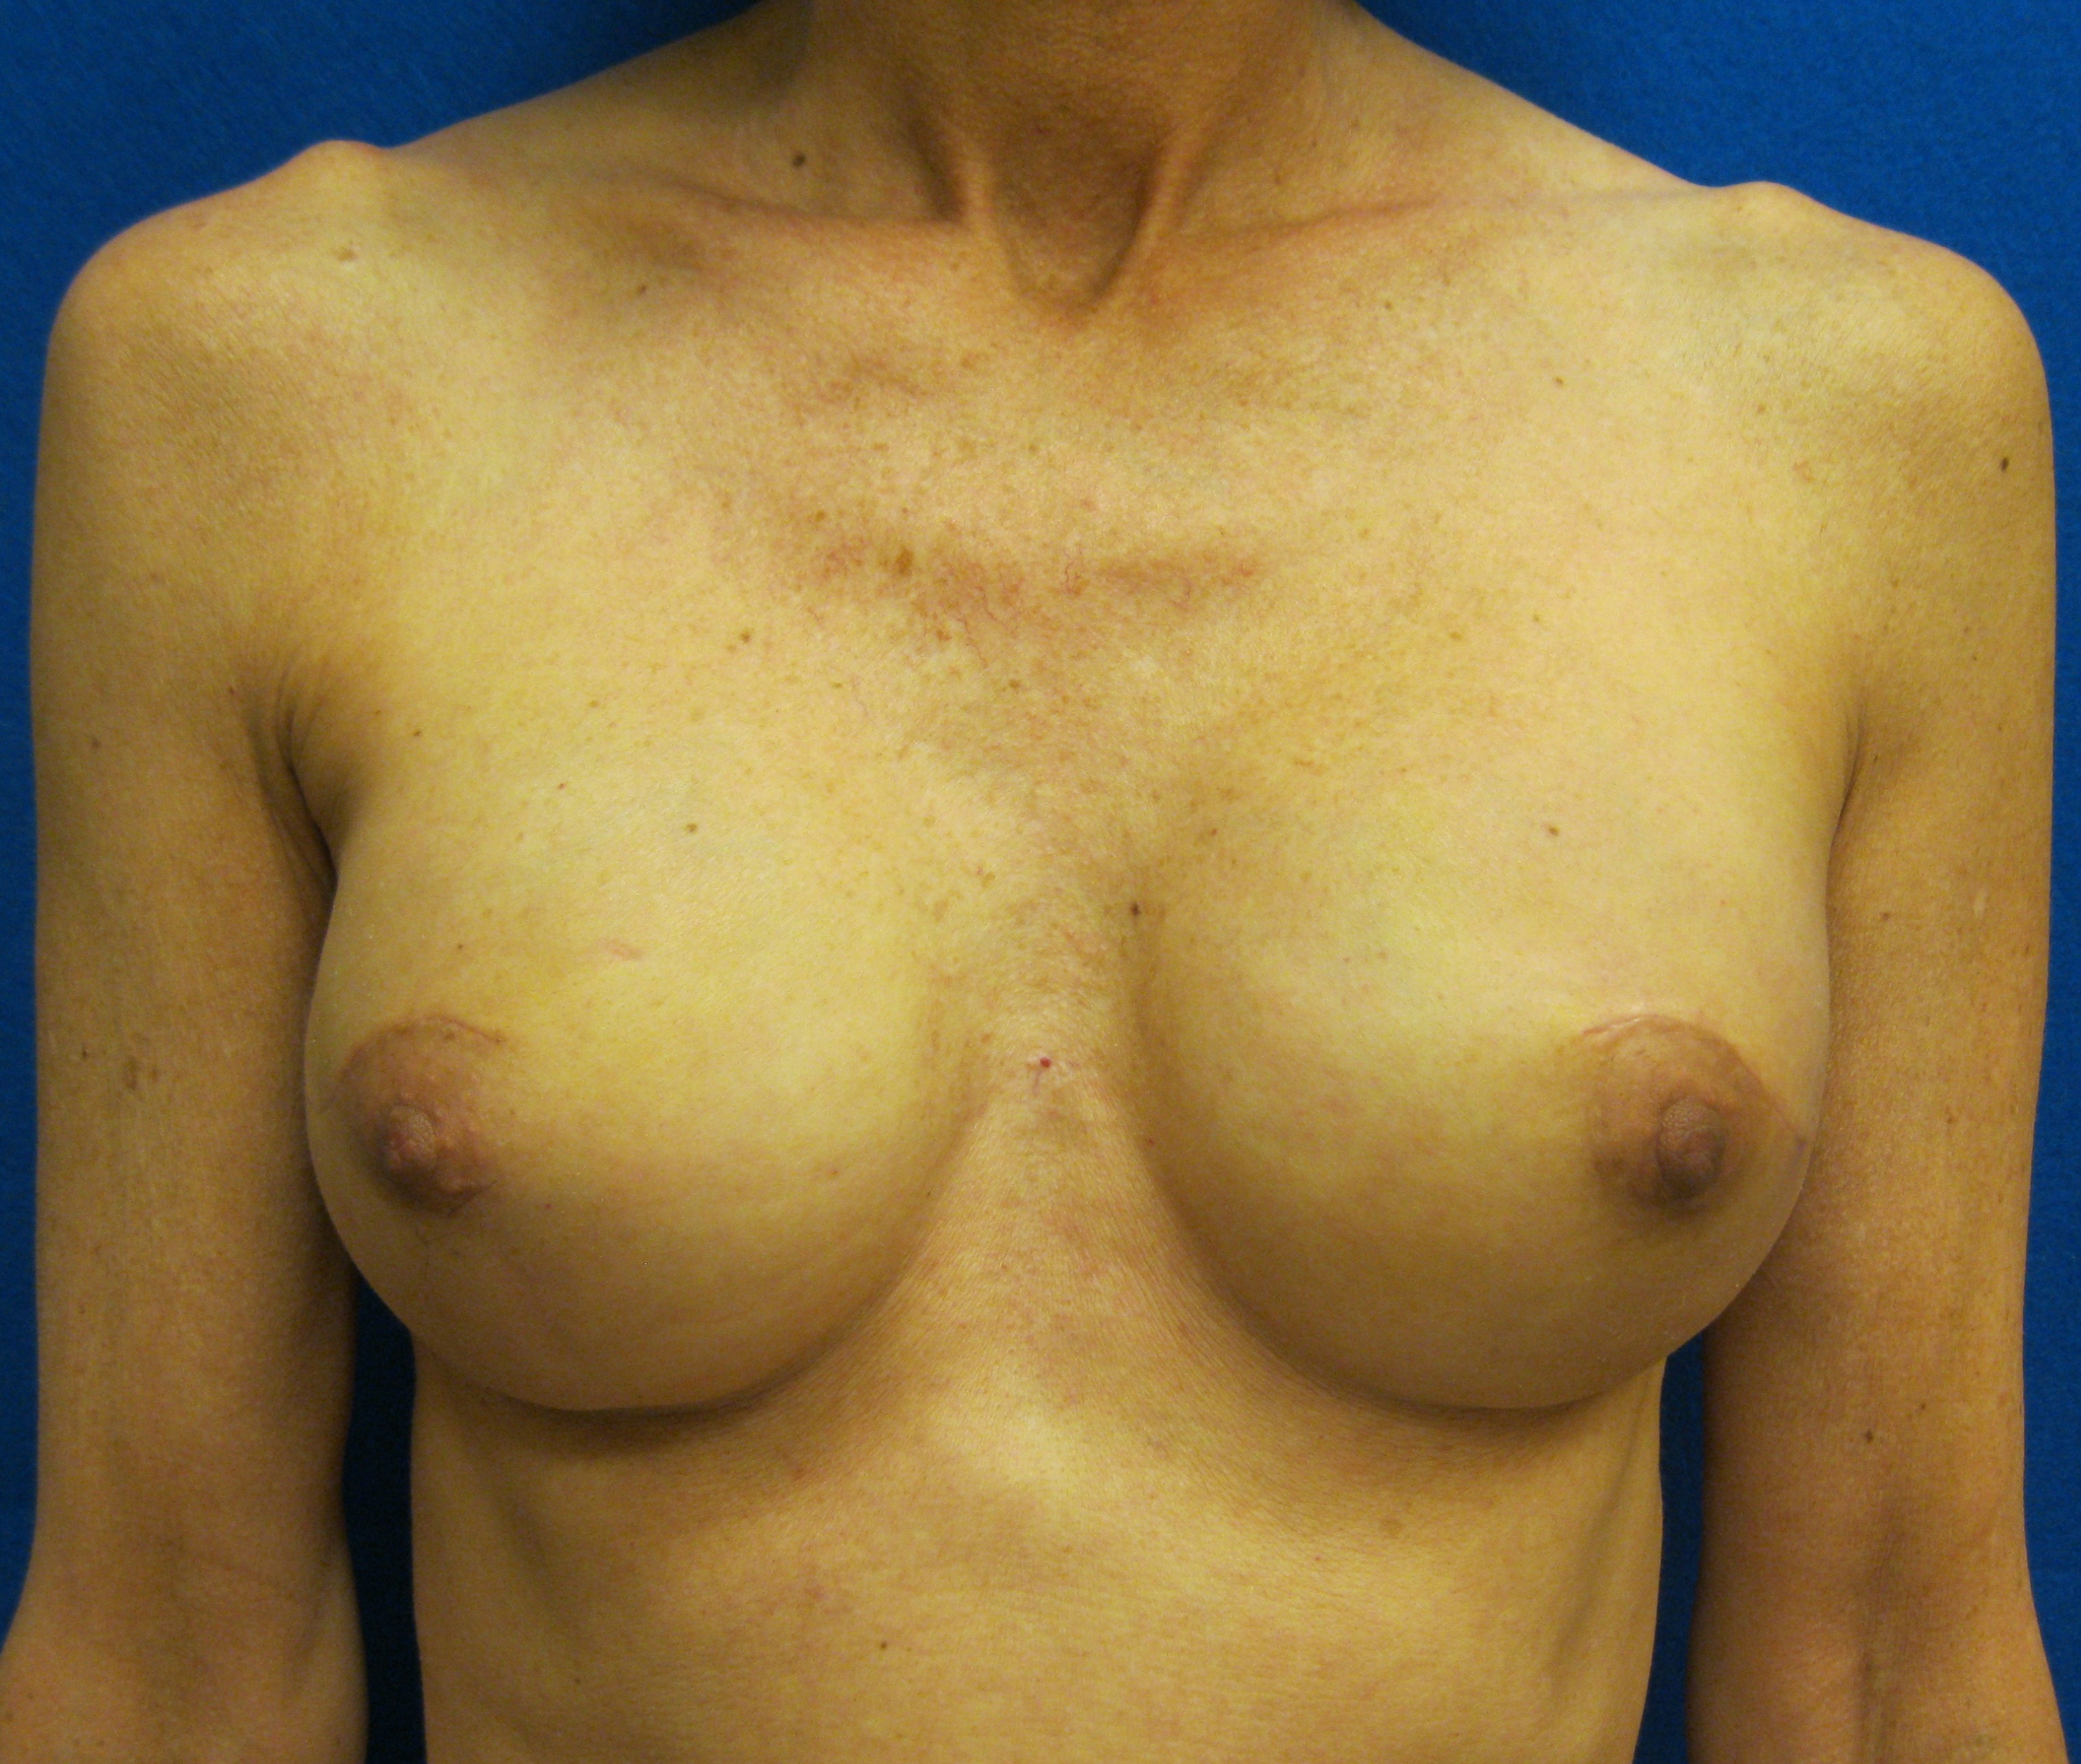 nipple sparing mastectomy one stage implant reconstruction fairfield westport connecticut jandali plastic surgery